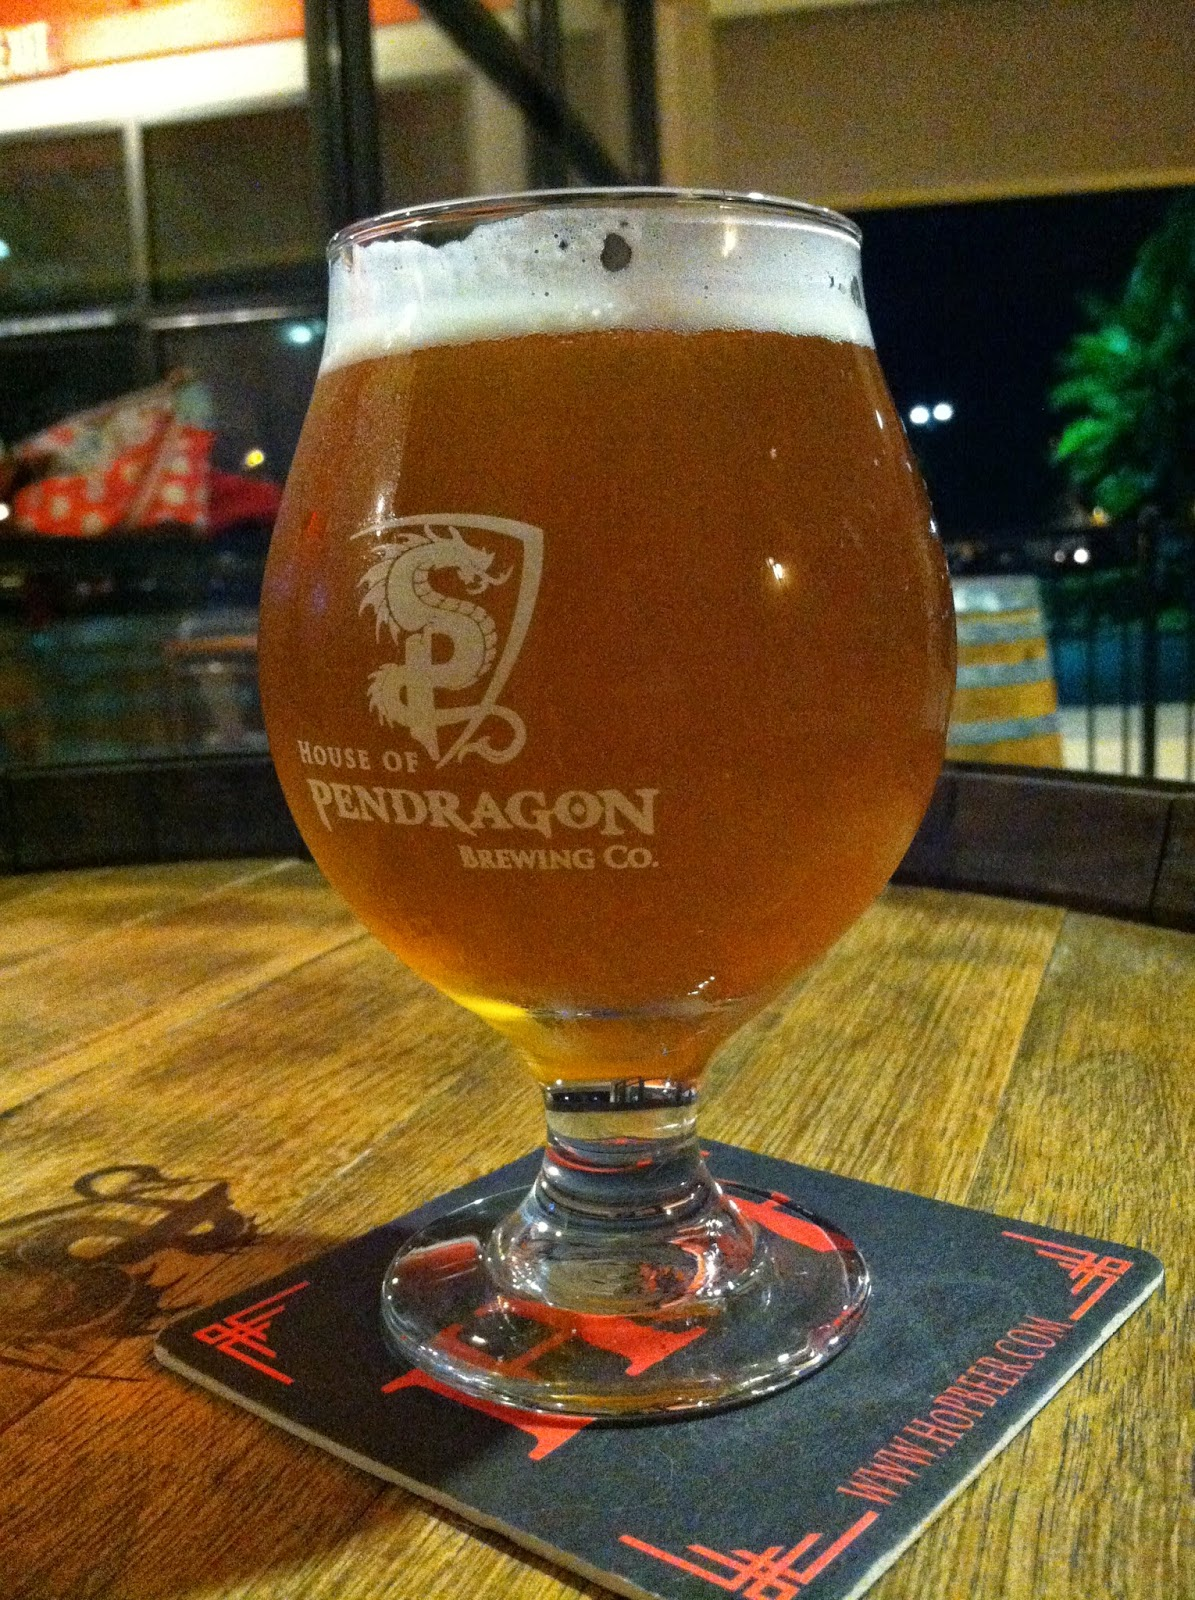 House of Pendragon Imperial Lancelot IPA 1